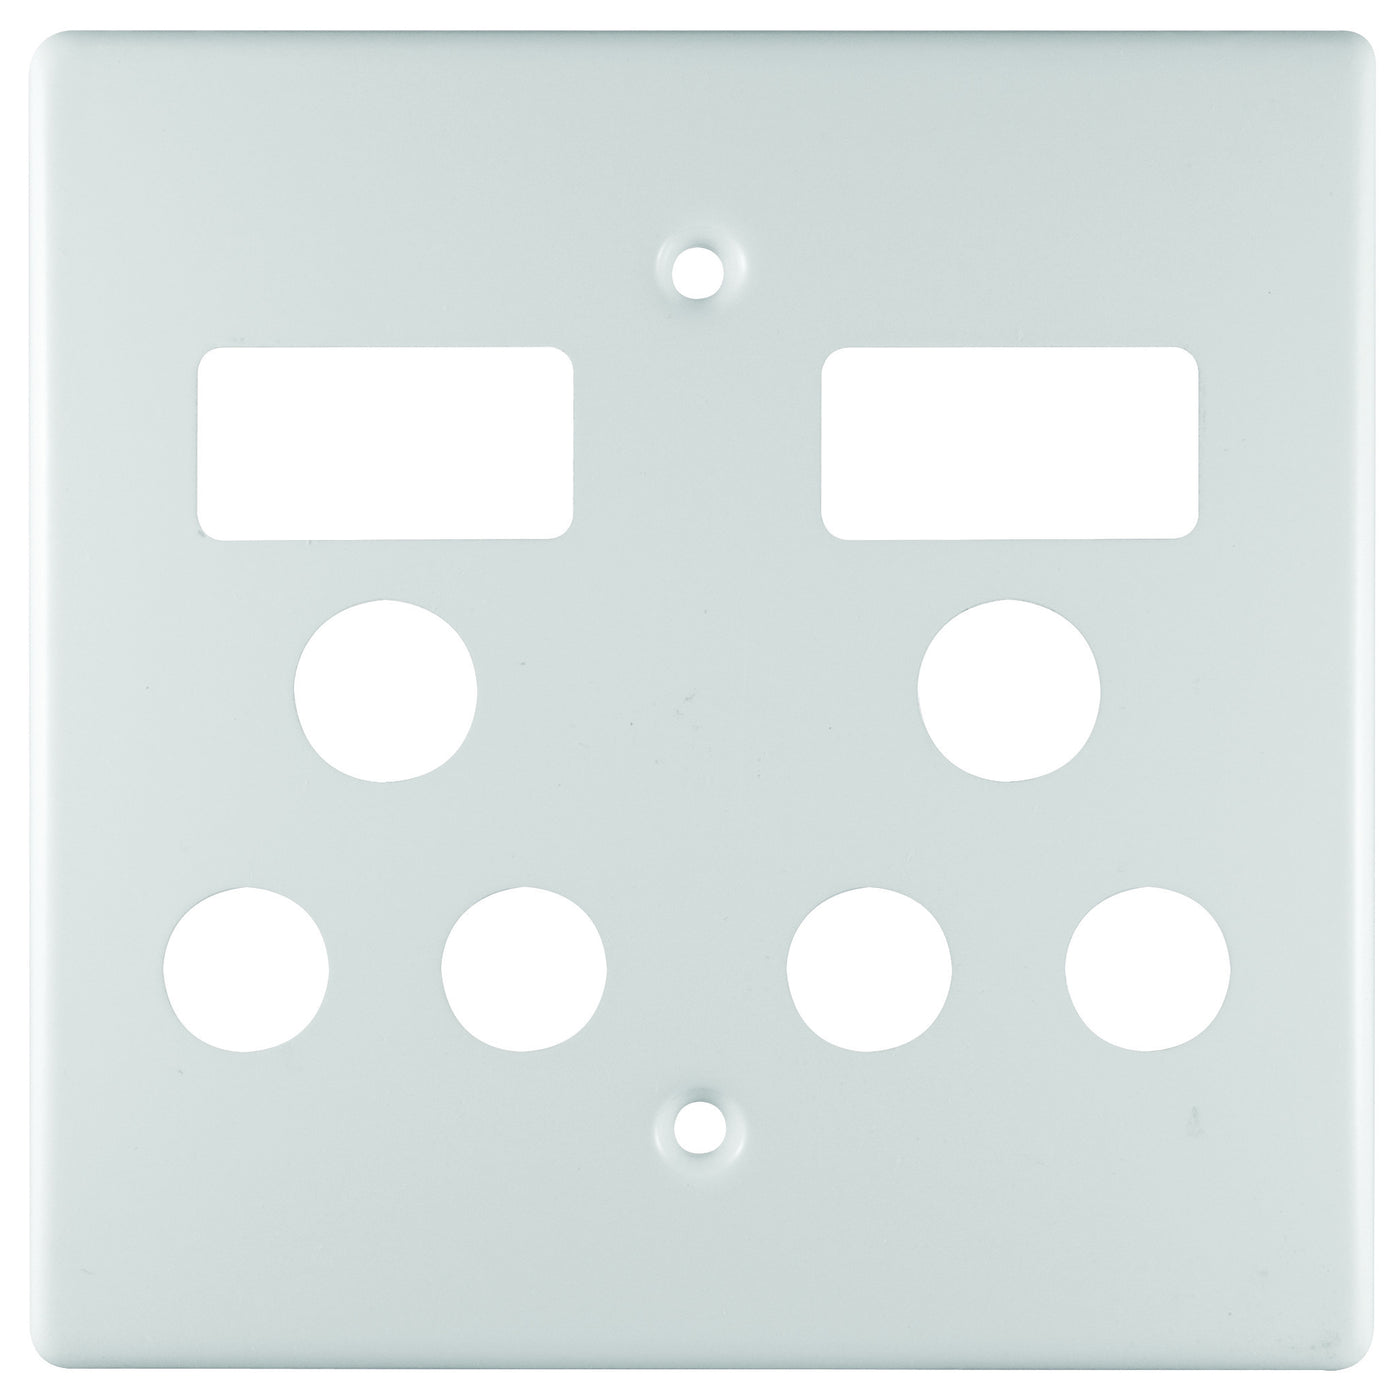 Plastic Switch Plate Covers Custom Crabtree Classic Double Socket Coverplate Plastic 4X4  Dynamic Design Inspiration